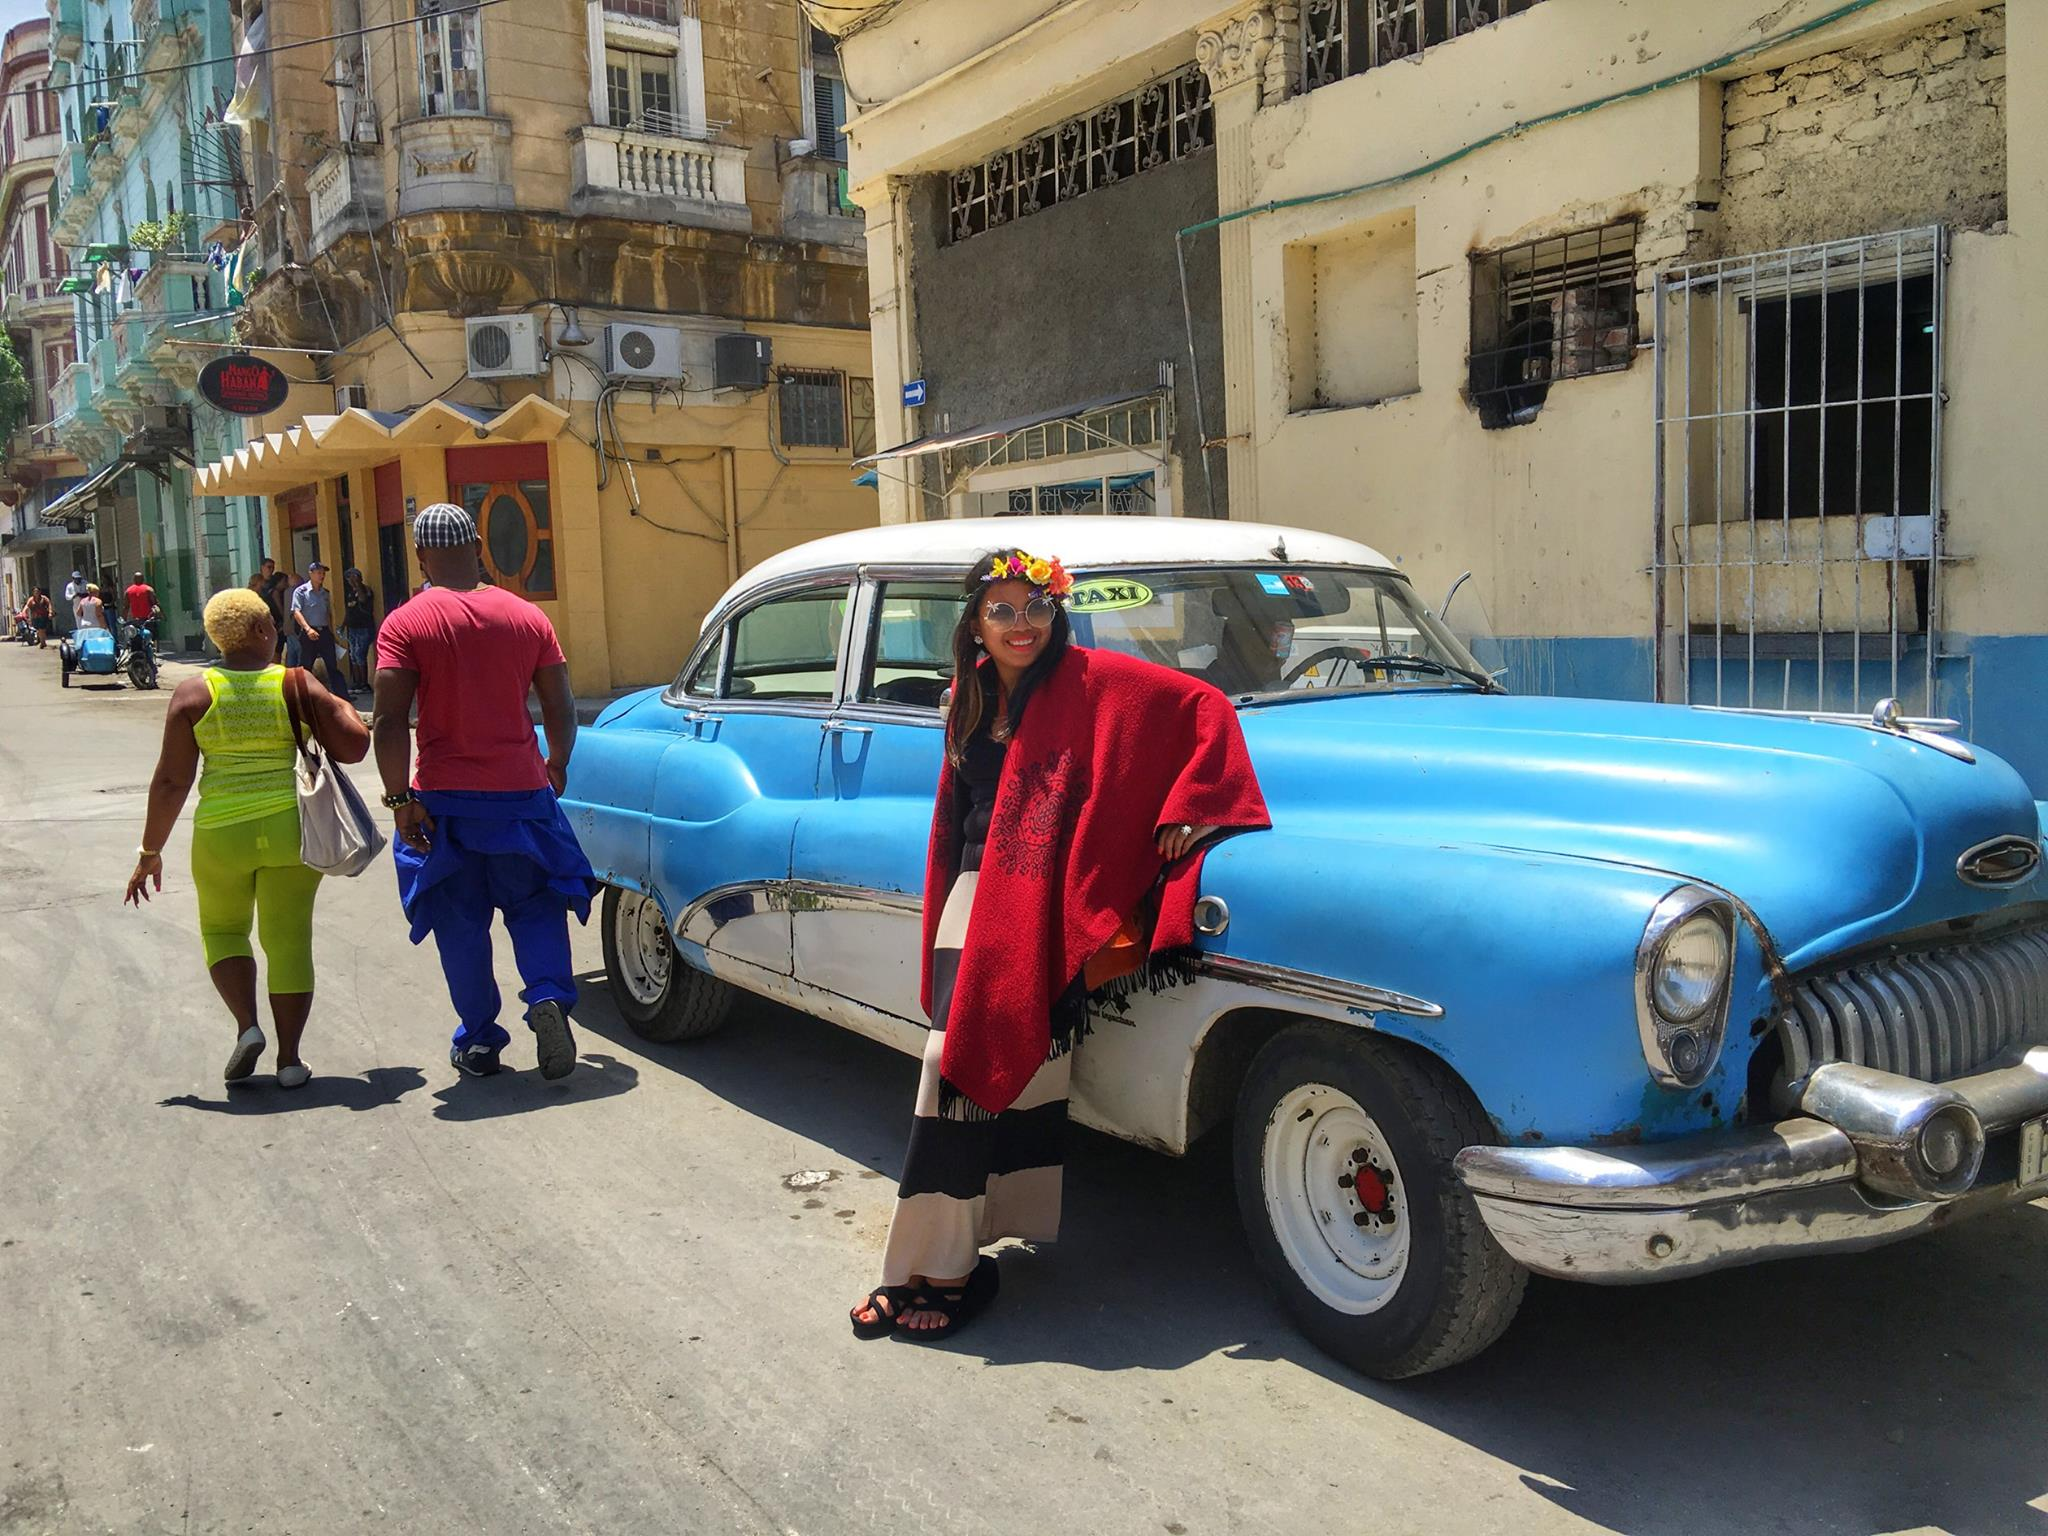 Rent A Car Guide on How to Rent a Car in Havana, Cuba